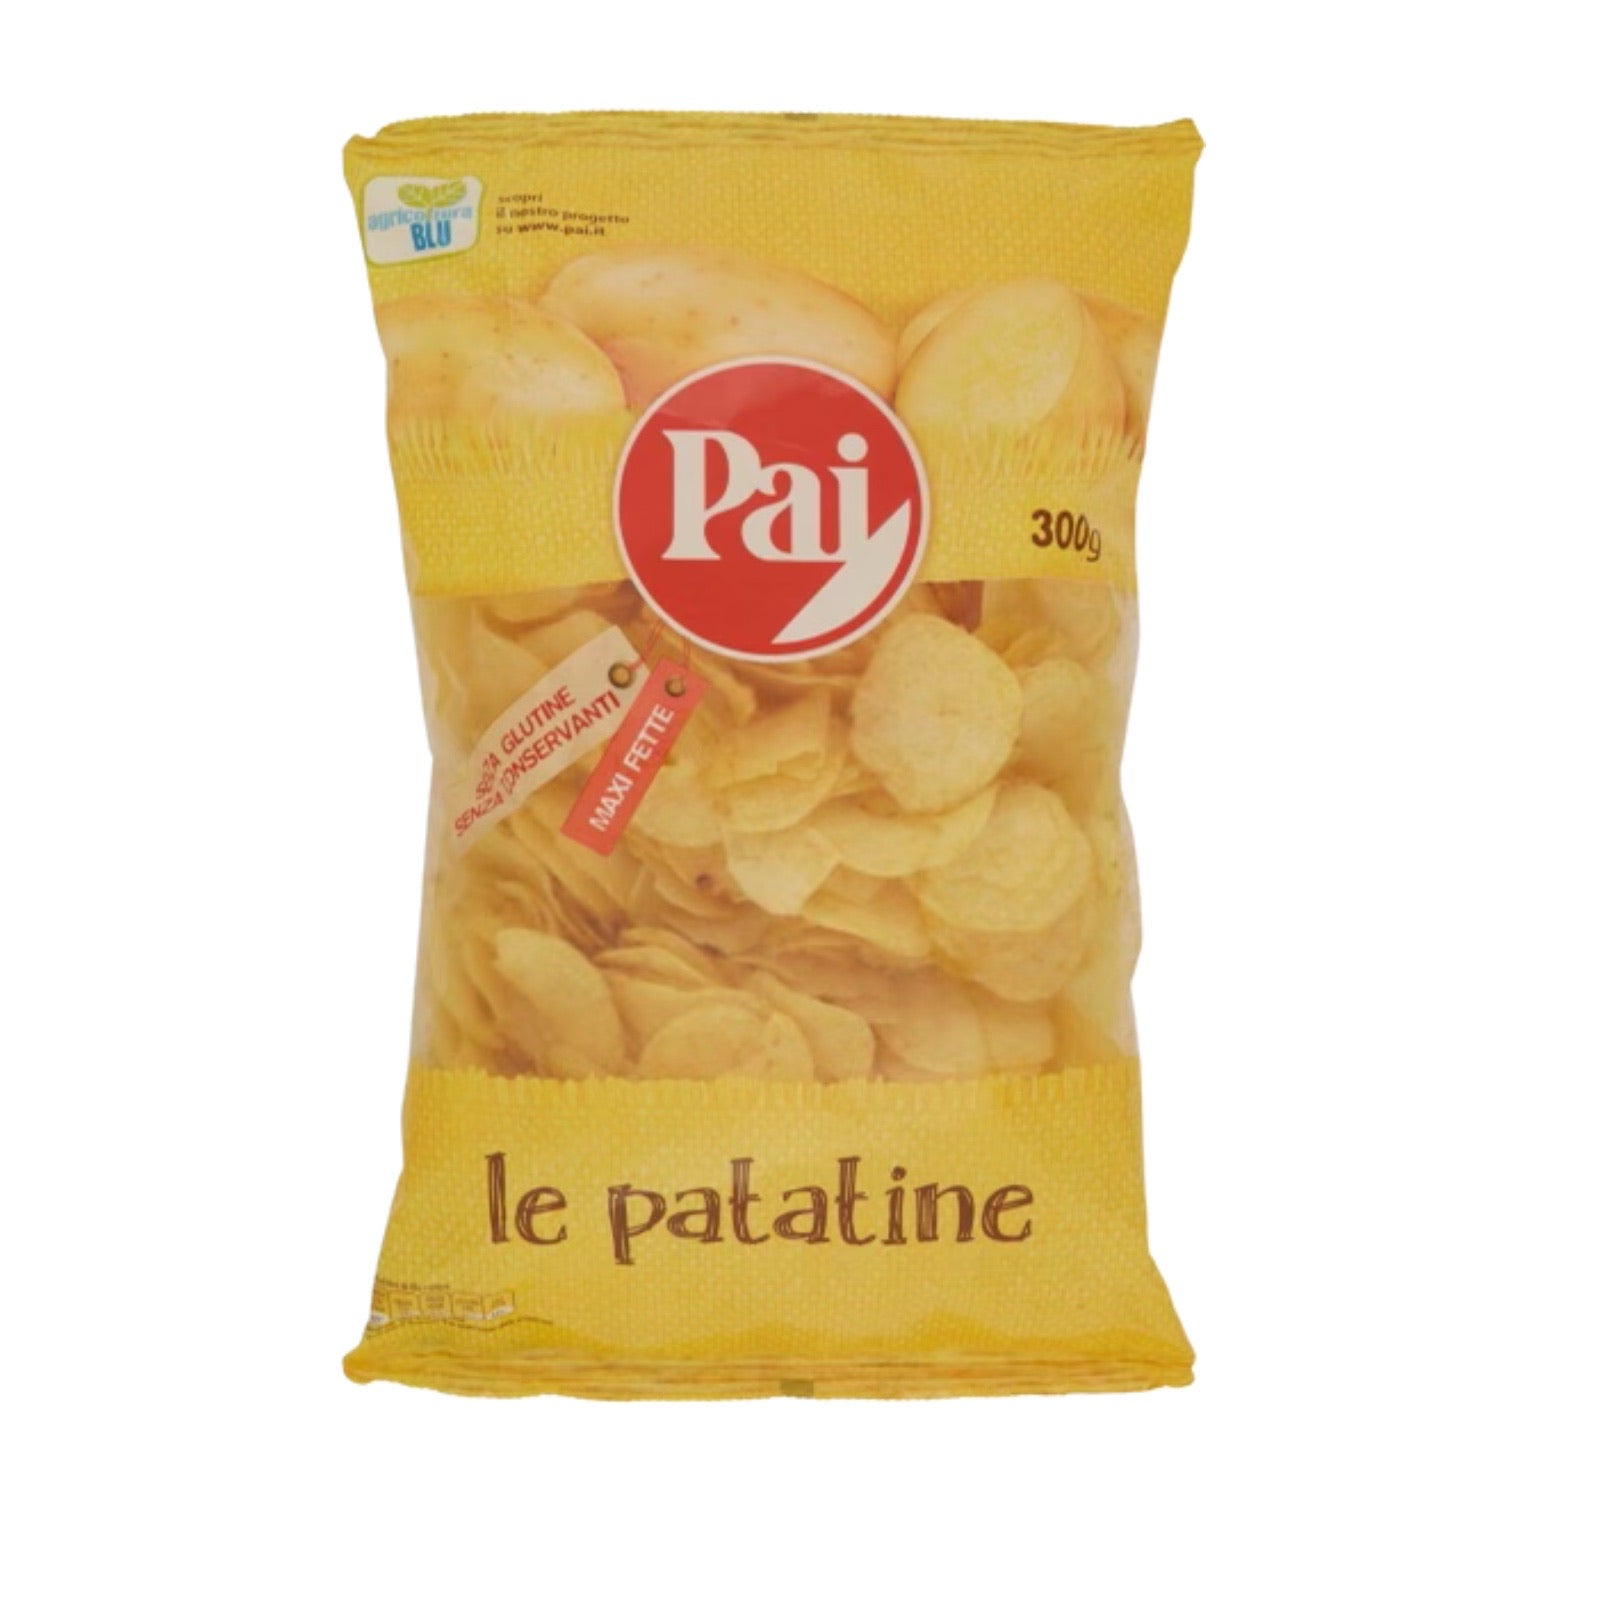 Pai Classic Italian potato chips 300g